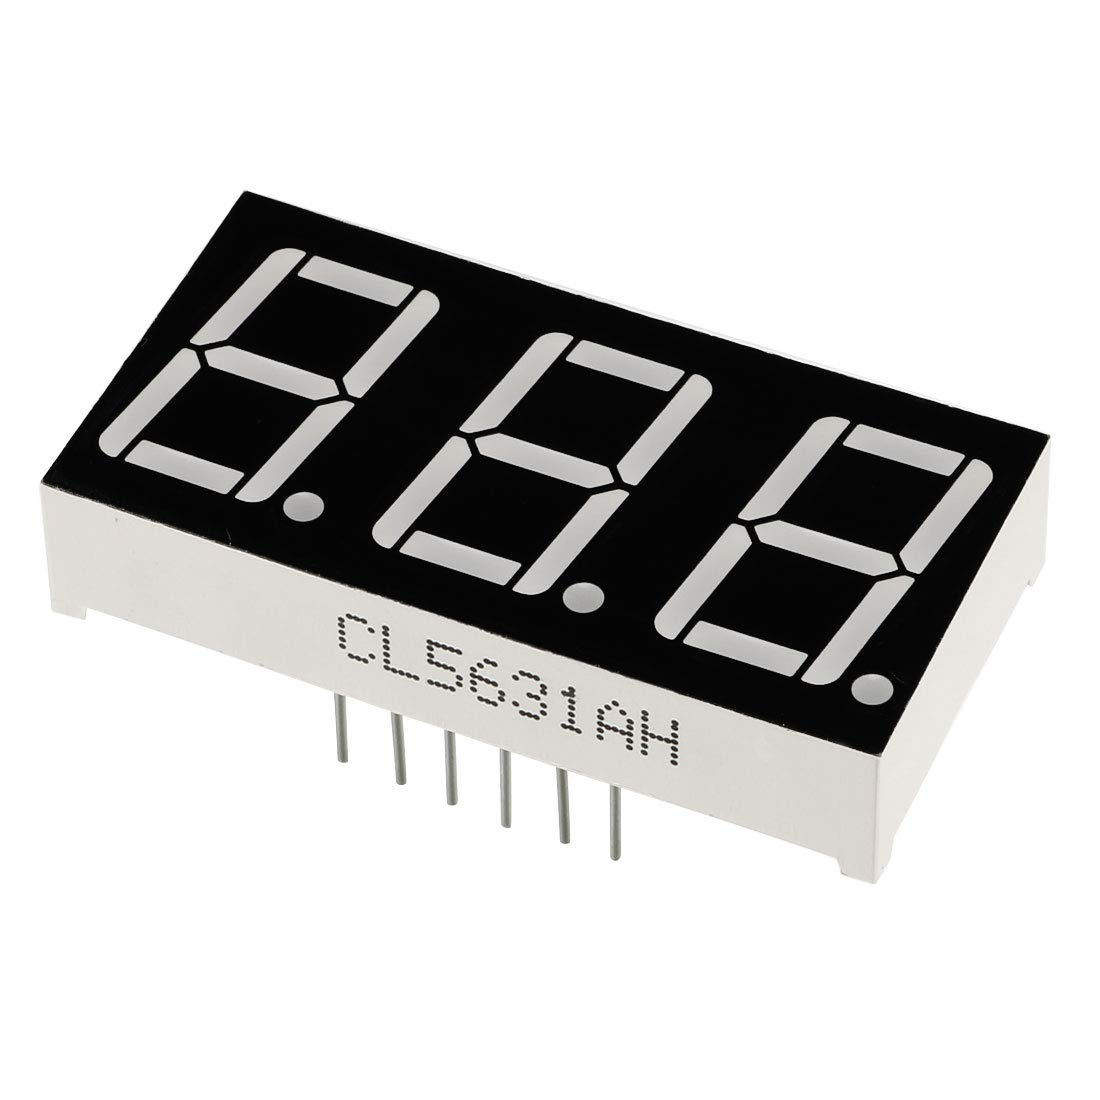 "Common Cathode 12 Pin 3 Bit 1.48 x 0.75 x 0.31 Inch 0.55/"" Red LED Display 3pcs"